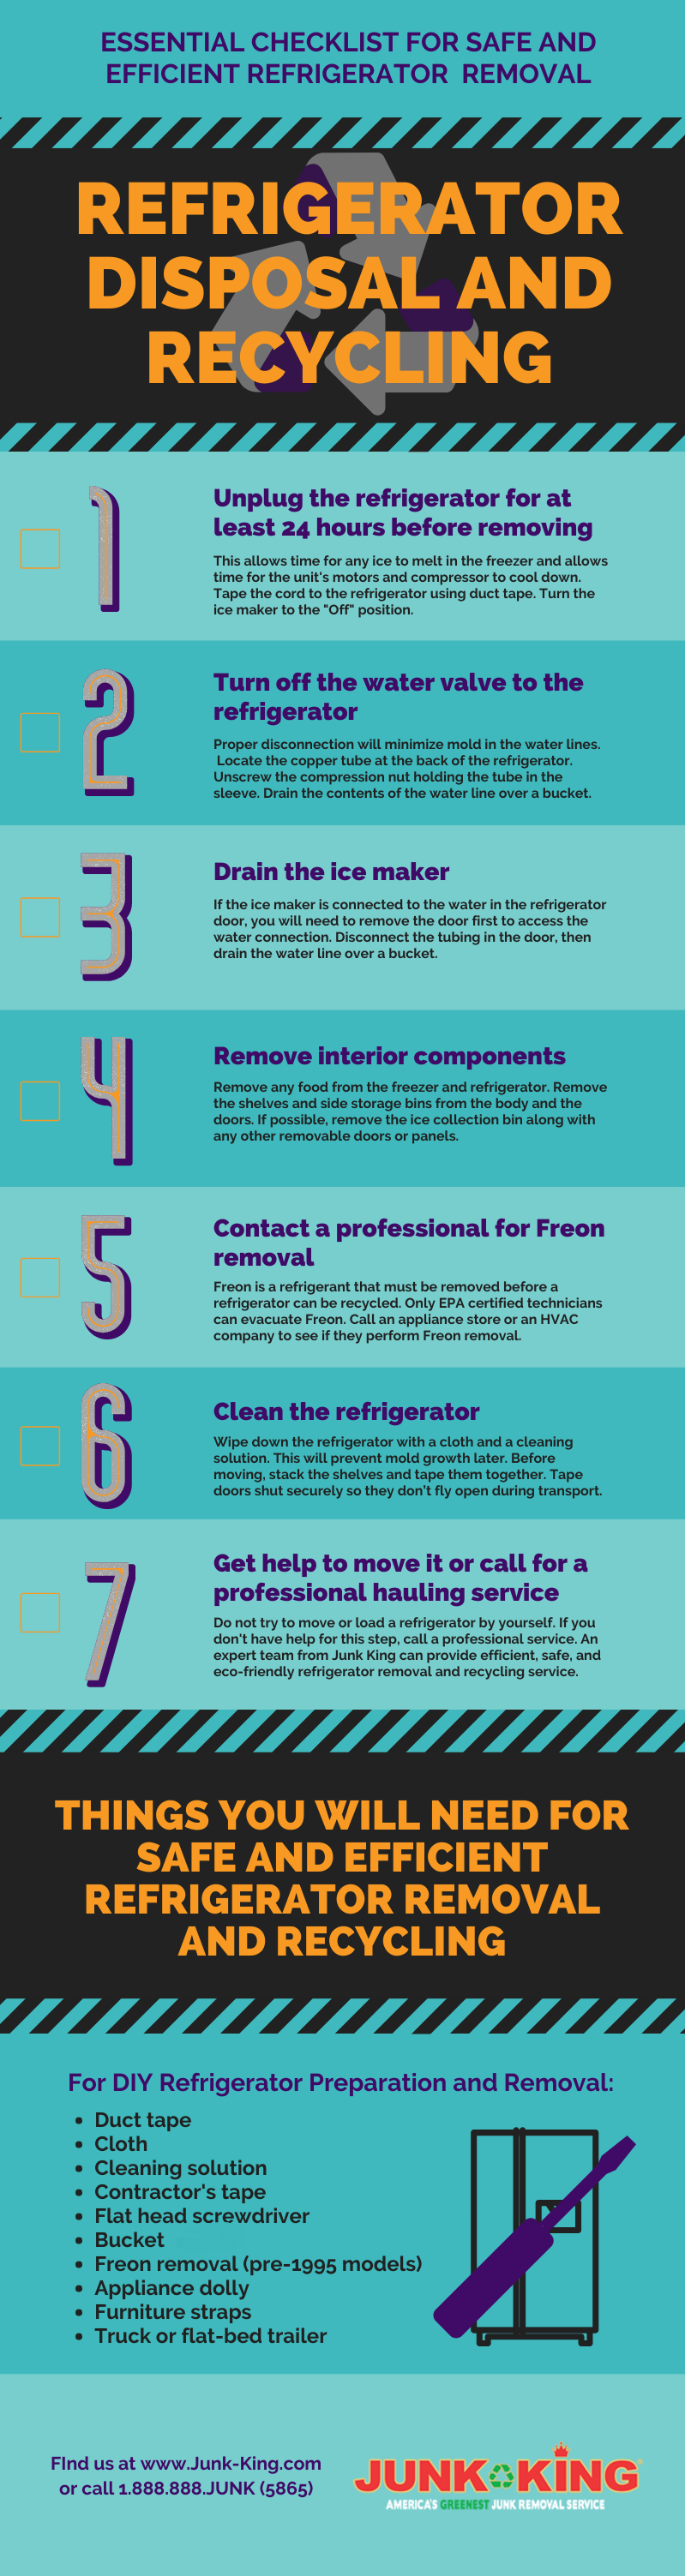 refrigerator-disposal-and-recycling-checklist